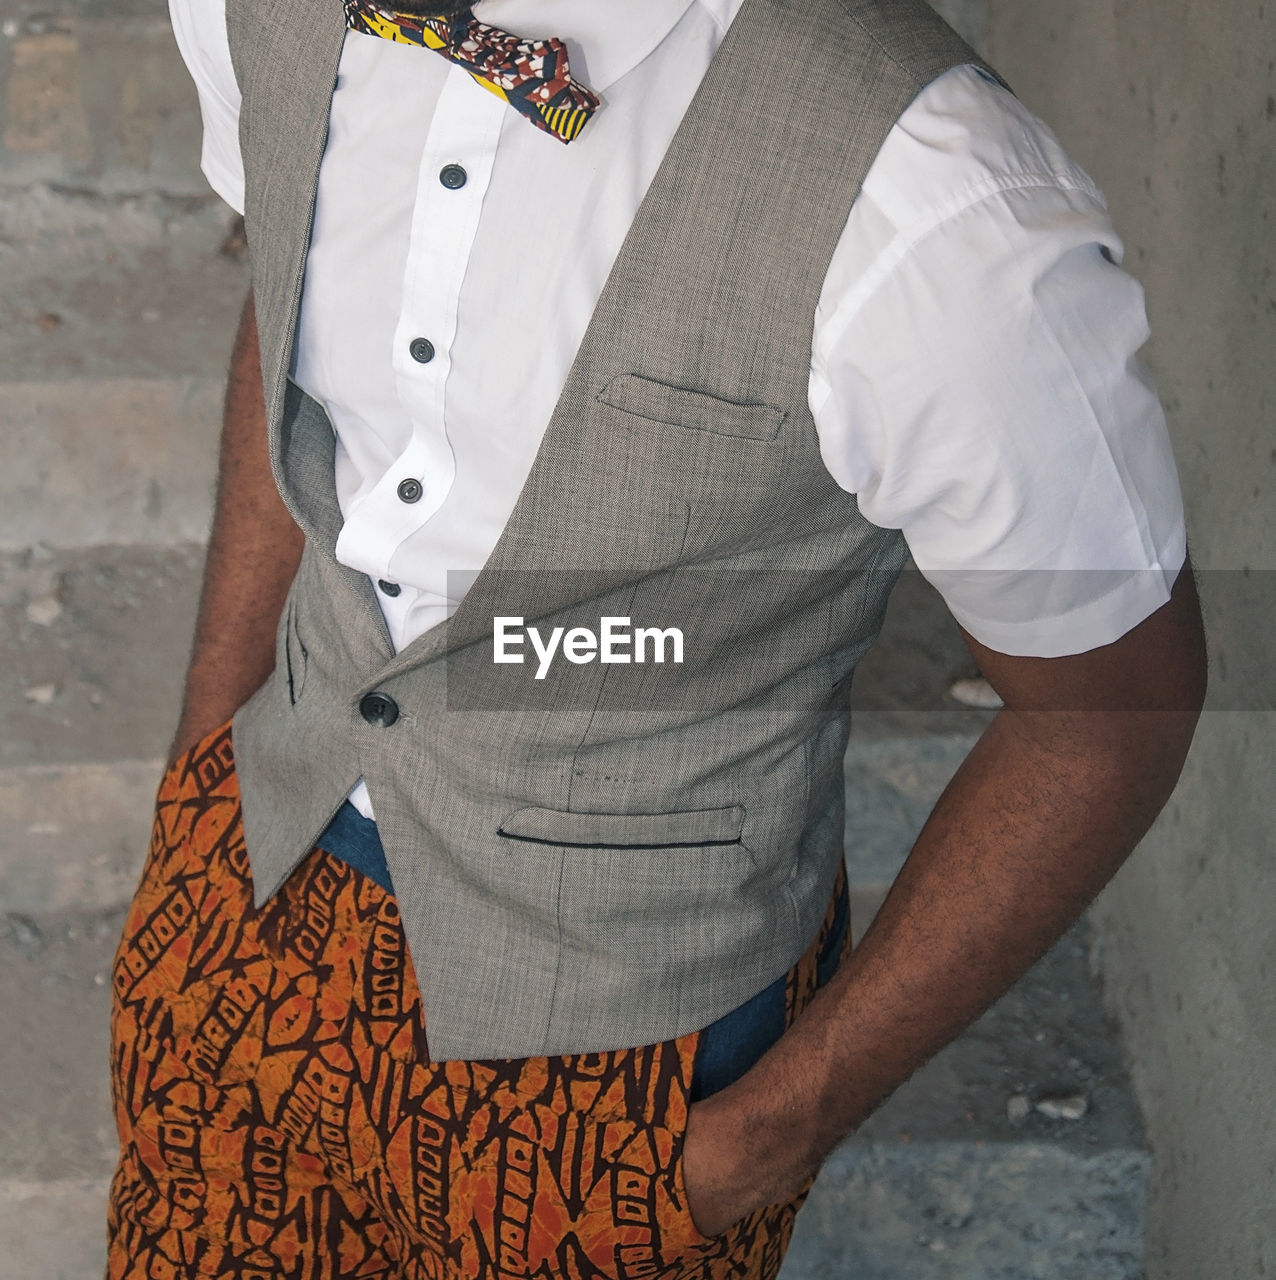 Midsection of man waistcoat while standing on steps